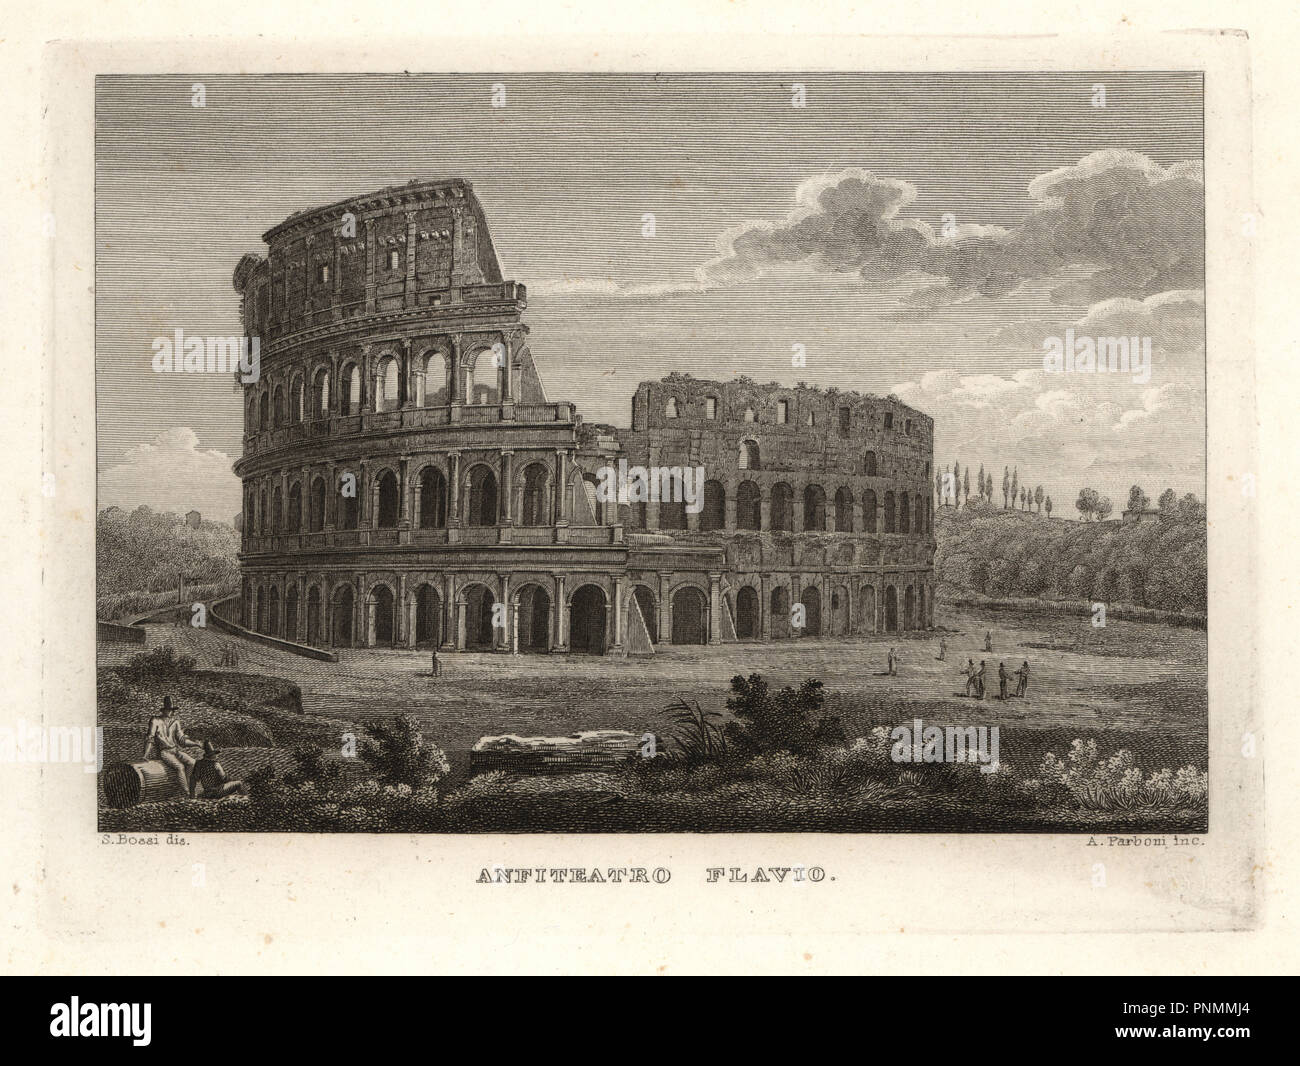 View of the ruins of the Flavian Amphitheater, Anfiteatro Flavio, Rome. Copperplate engraving by A. Parboni after an illustration by Sylvestro Bossi from Achille Parboni's New Collection of Principal Views Ancient and Modern of the City of Rome, 1830. - Stock Image